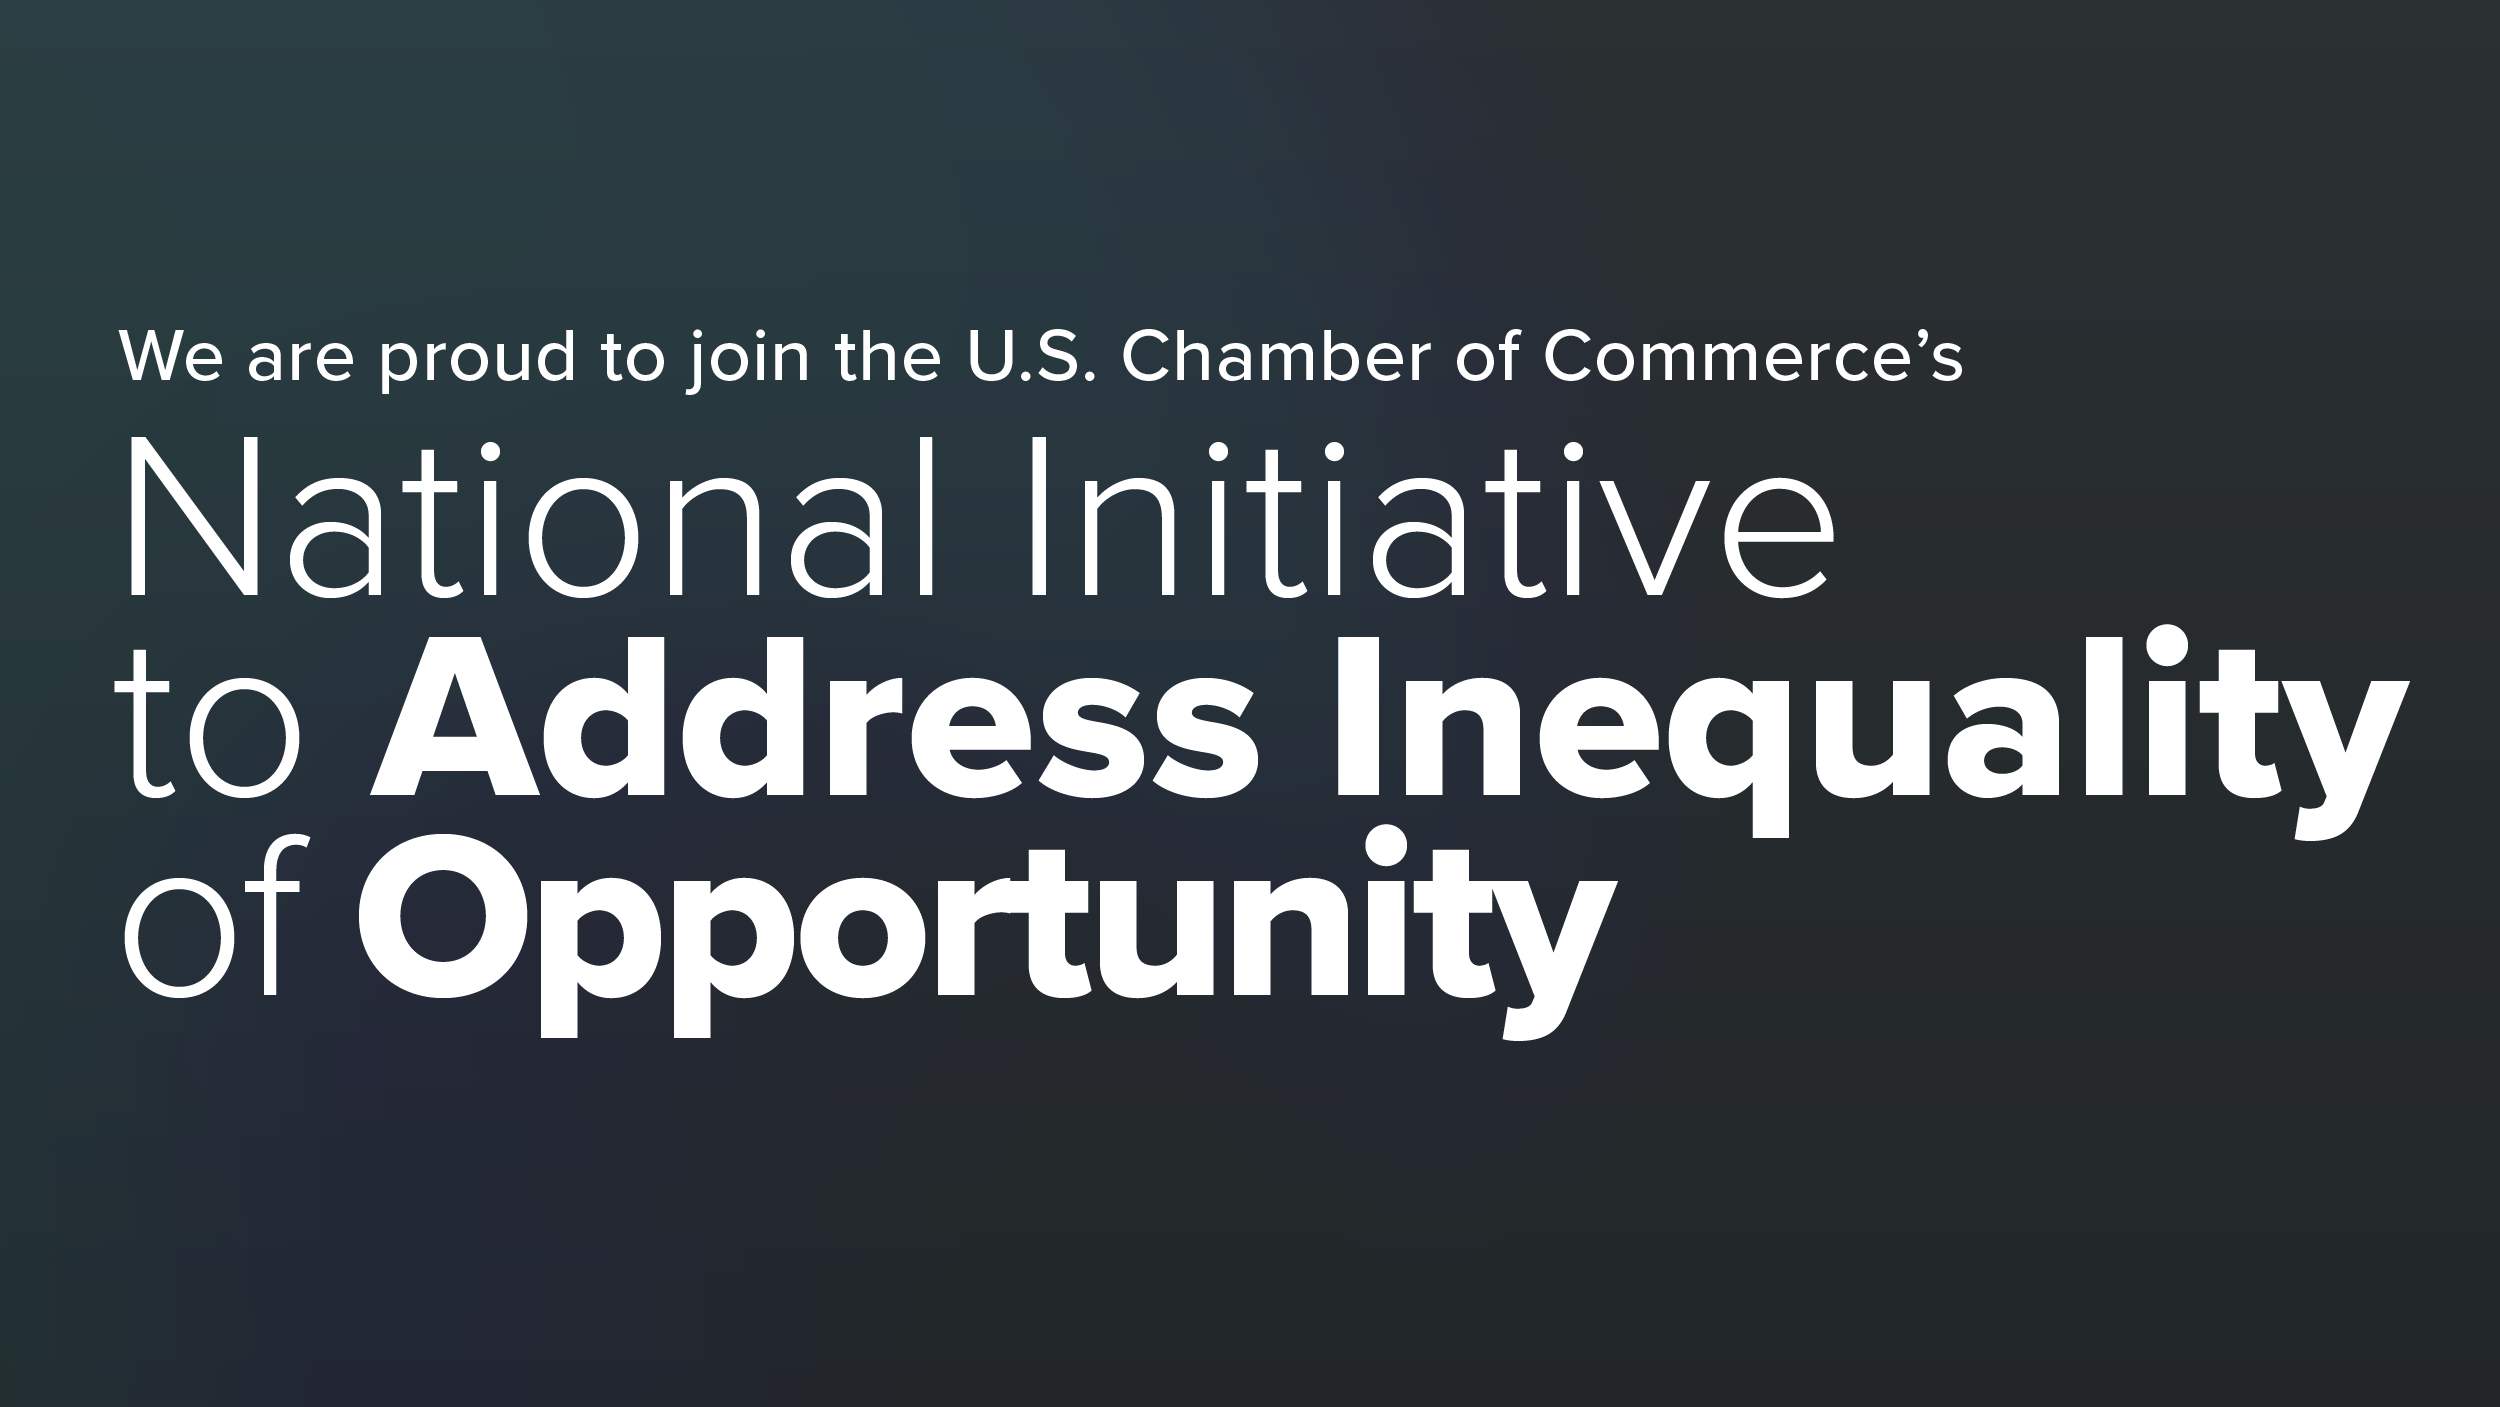 CEP Joins National Initiative to Address Inequality of Opportunity